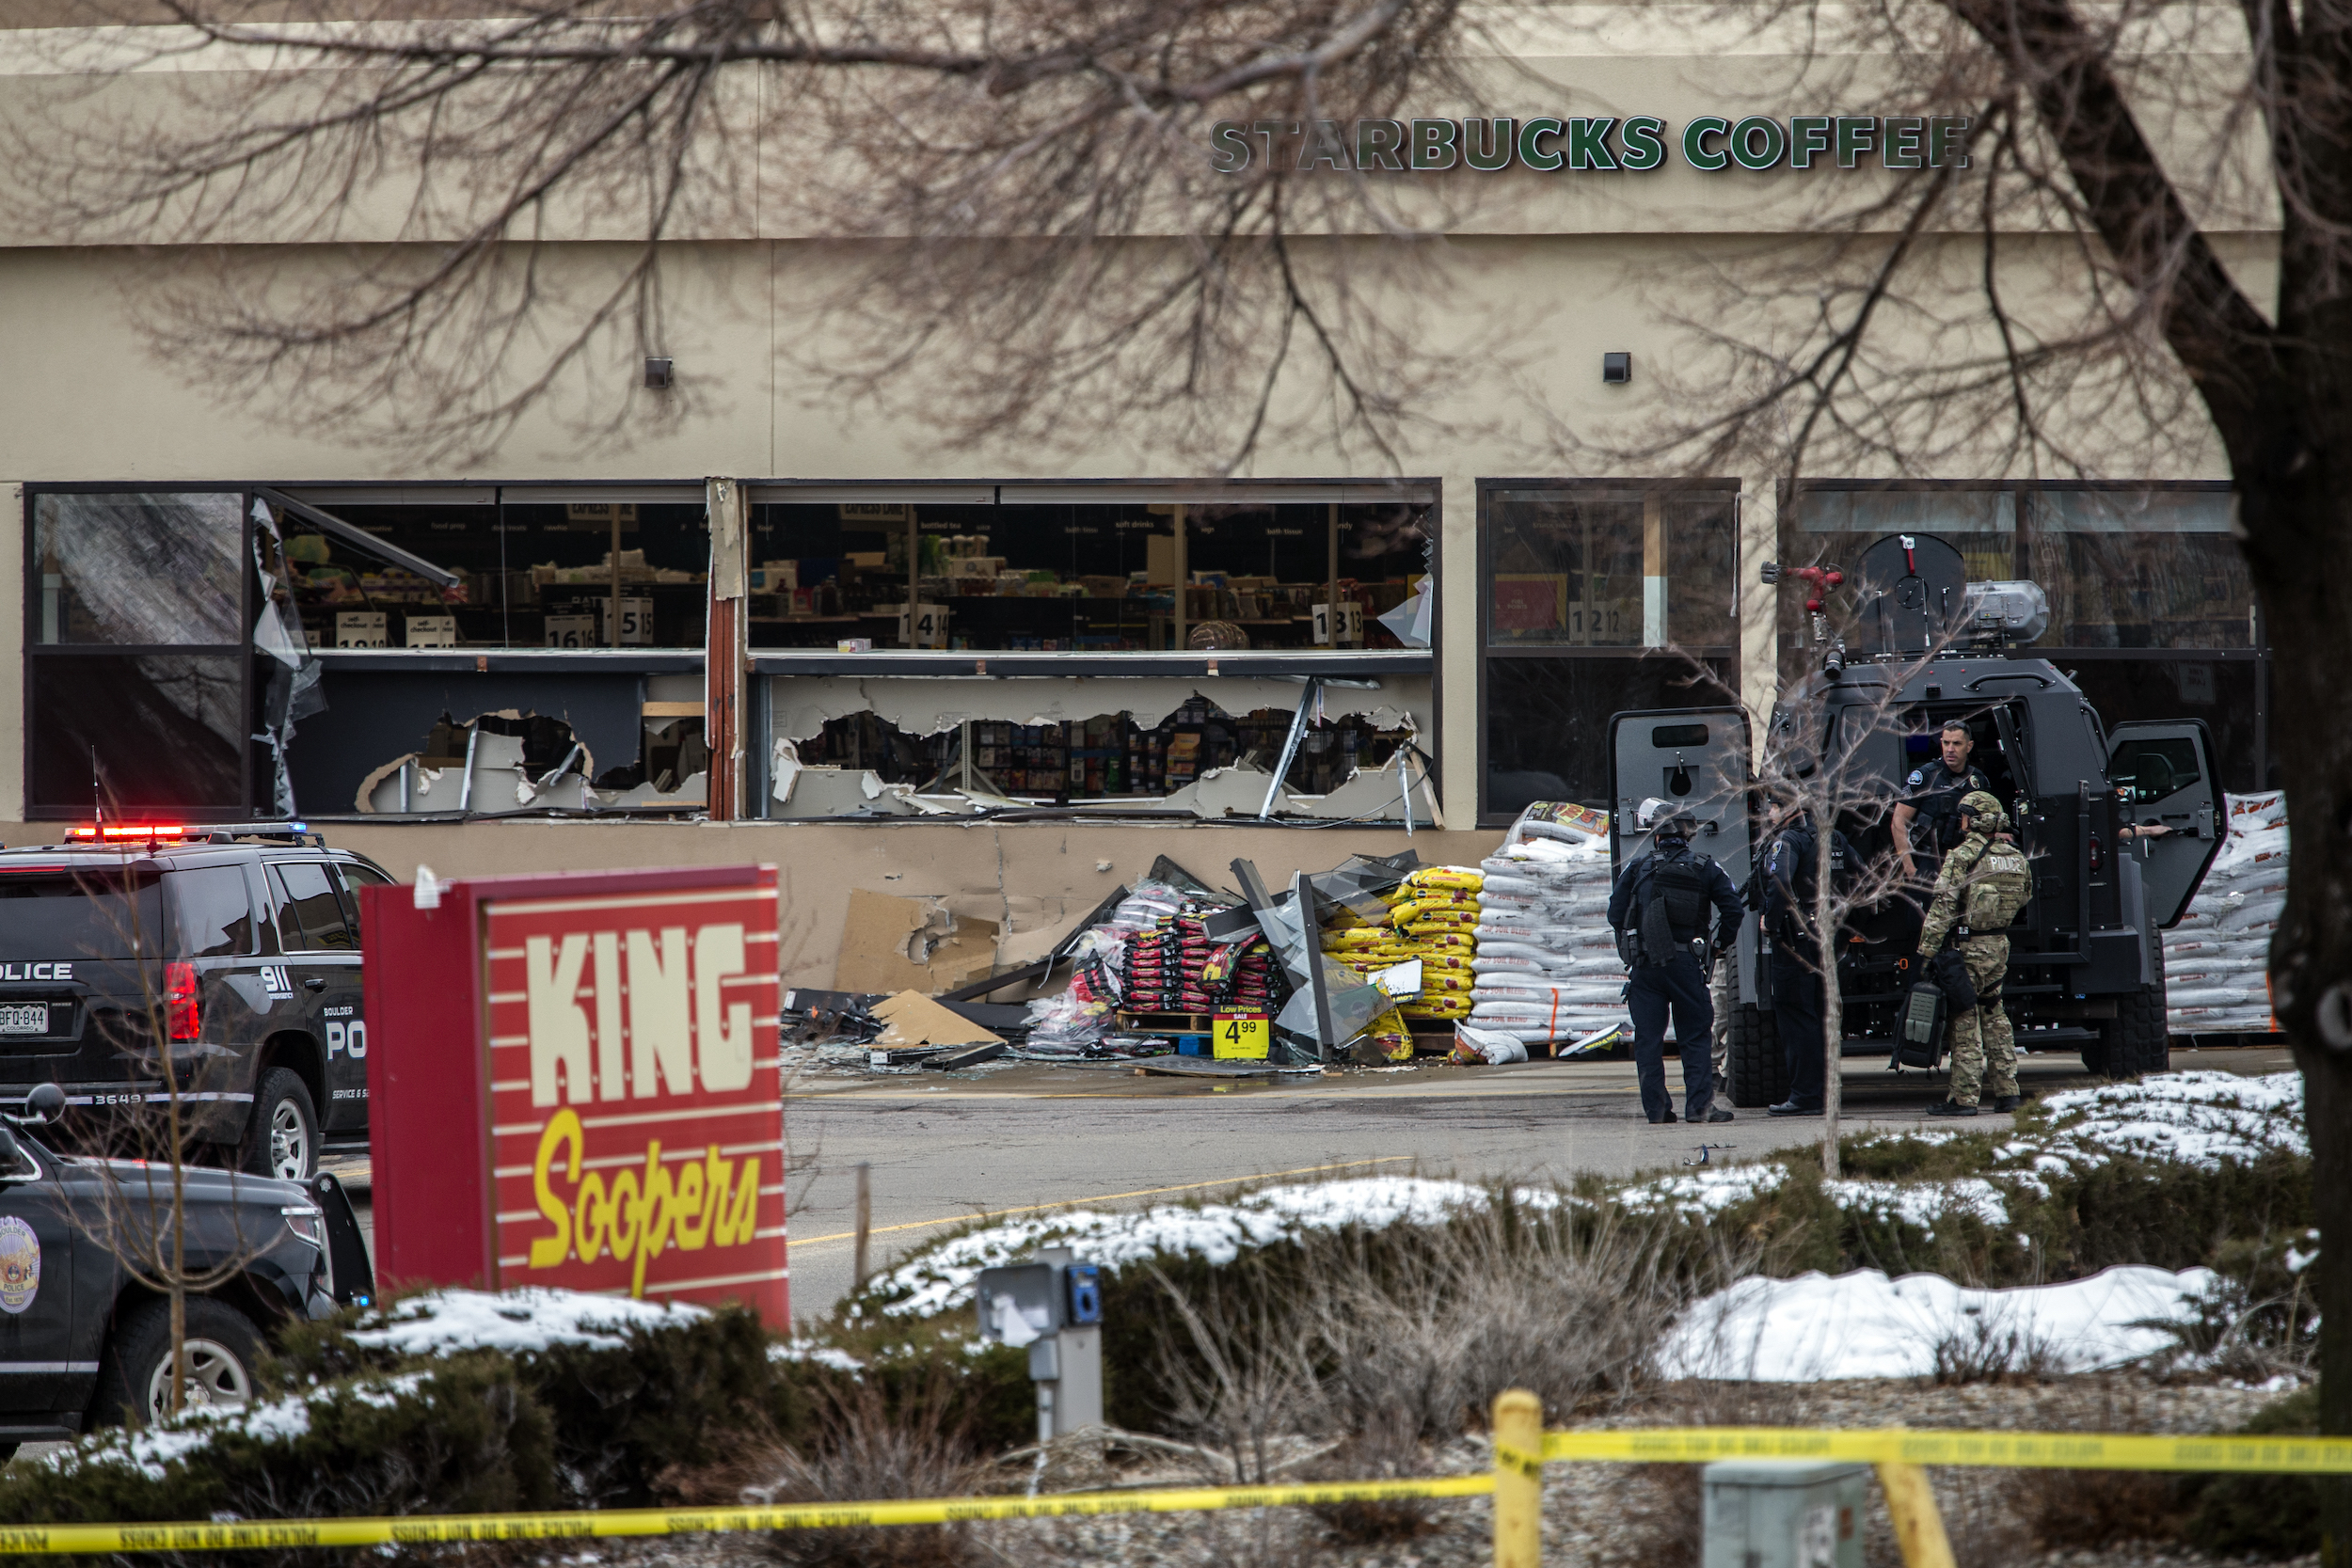 Tactical police units respond to the scene at a King Soopers grocery store after a shooting on March 22, 2021 in Boulder, Colorado.